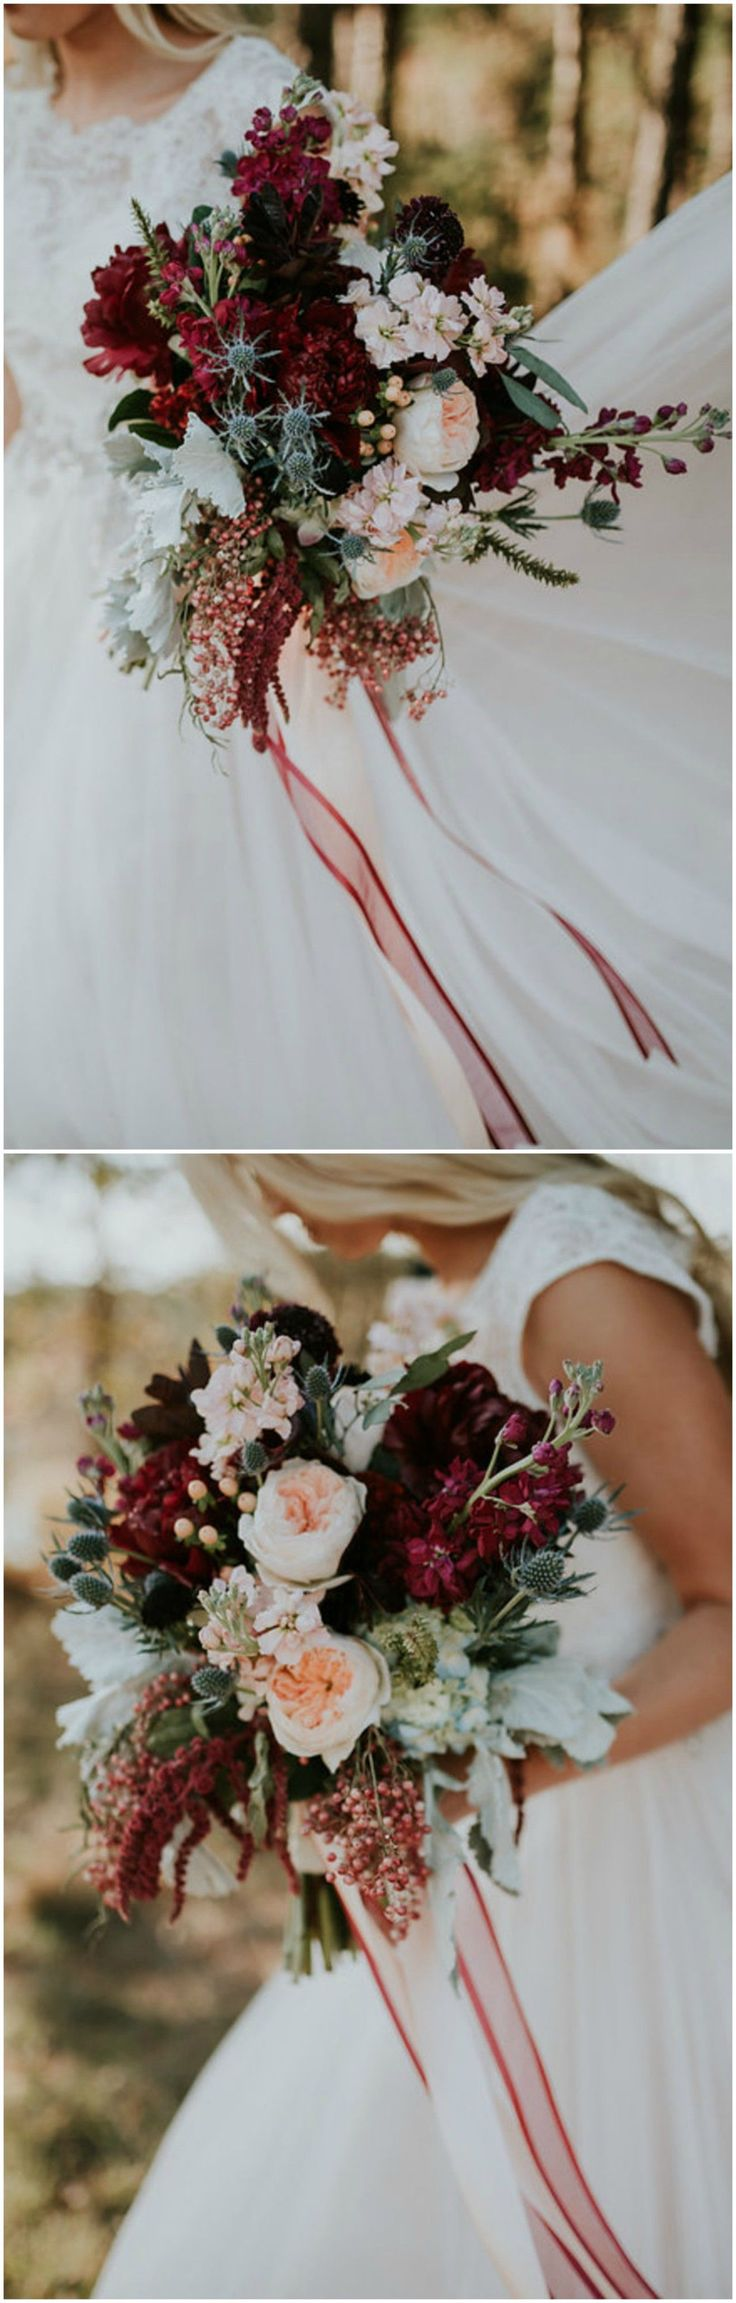 Romantic wedding bouquet, peach and wine colored florals, red ribbons // Moriah Elisabeth Photography